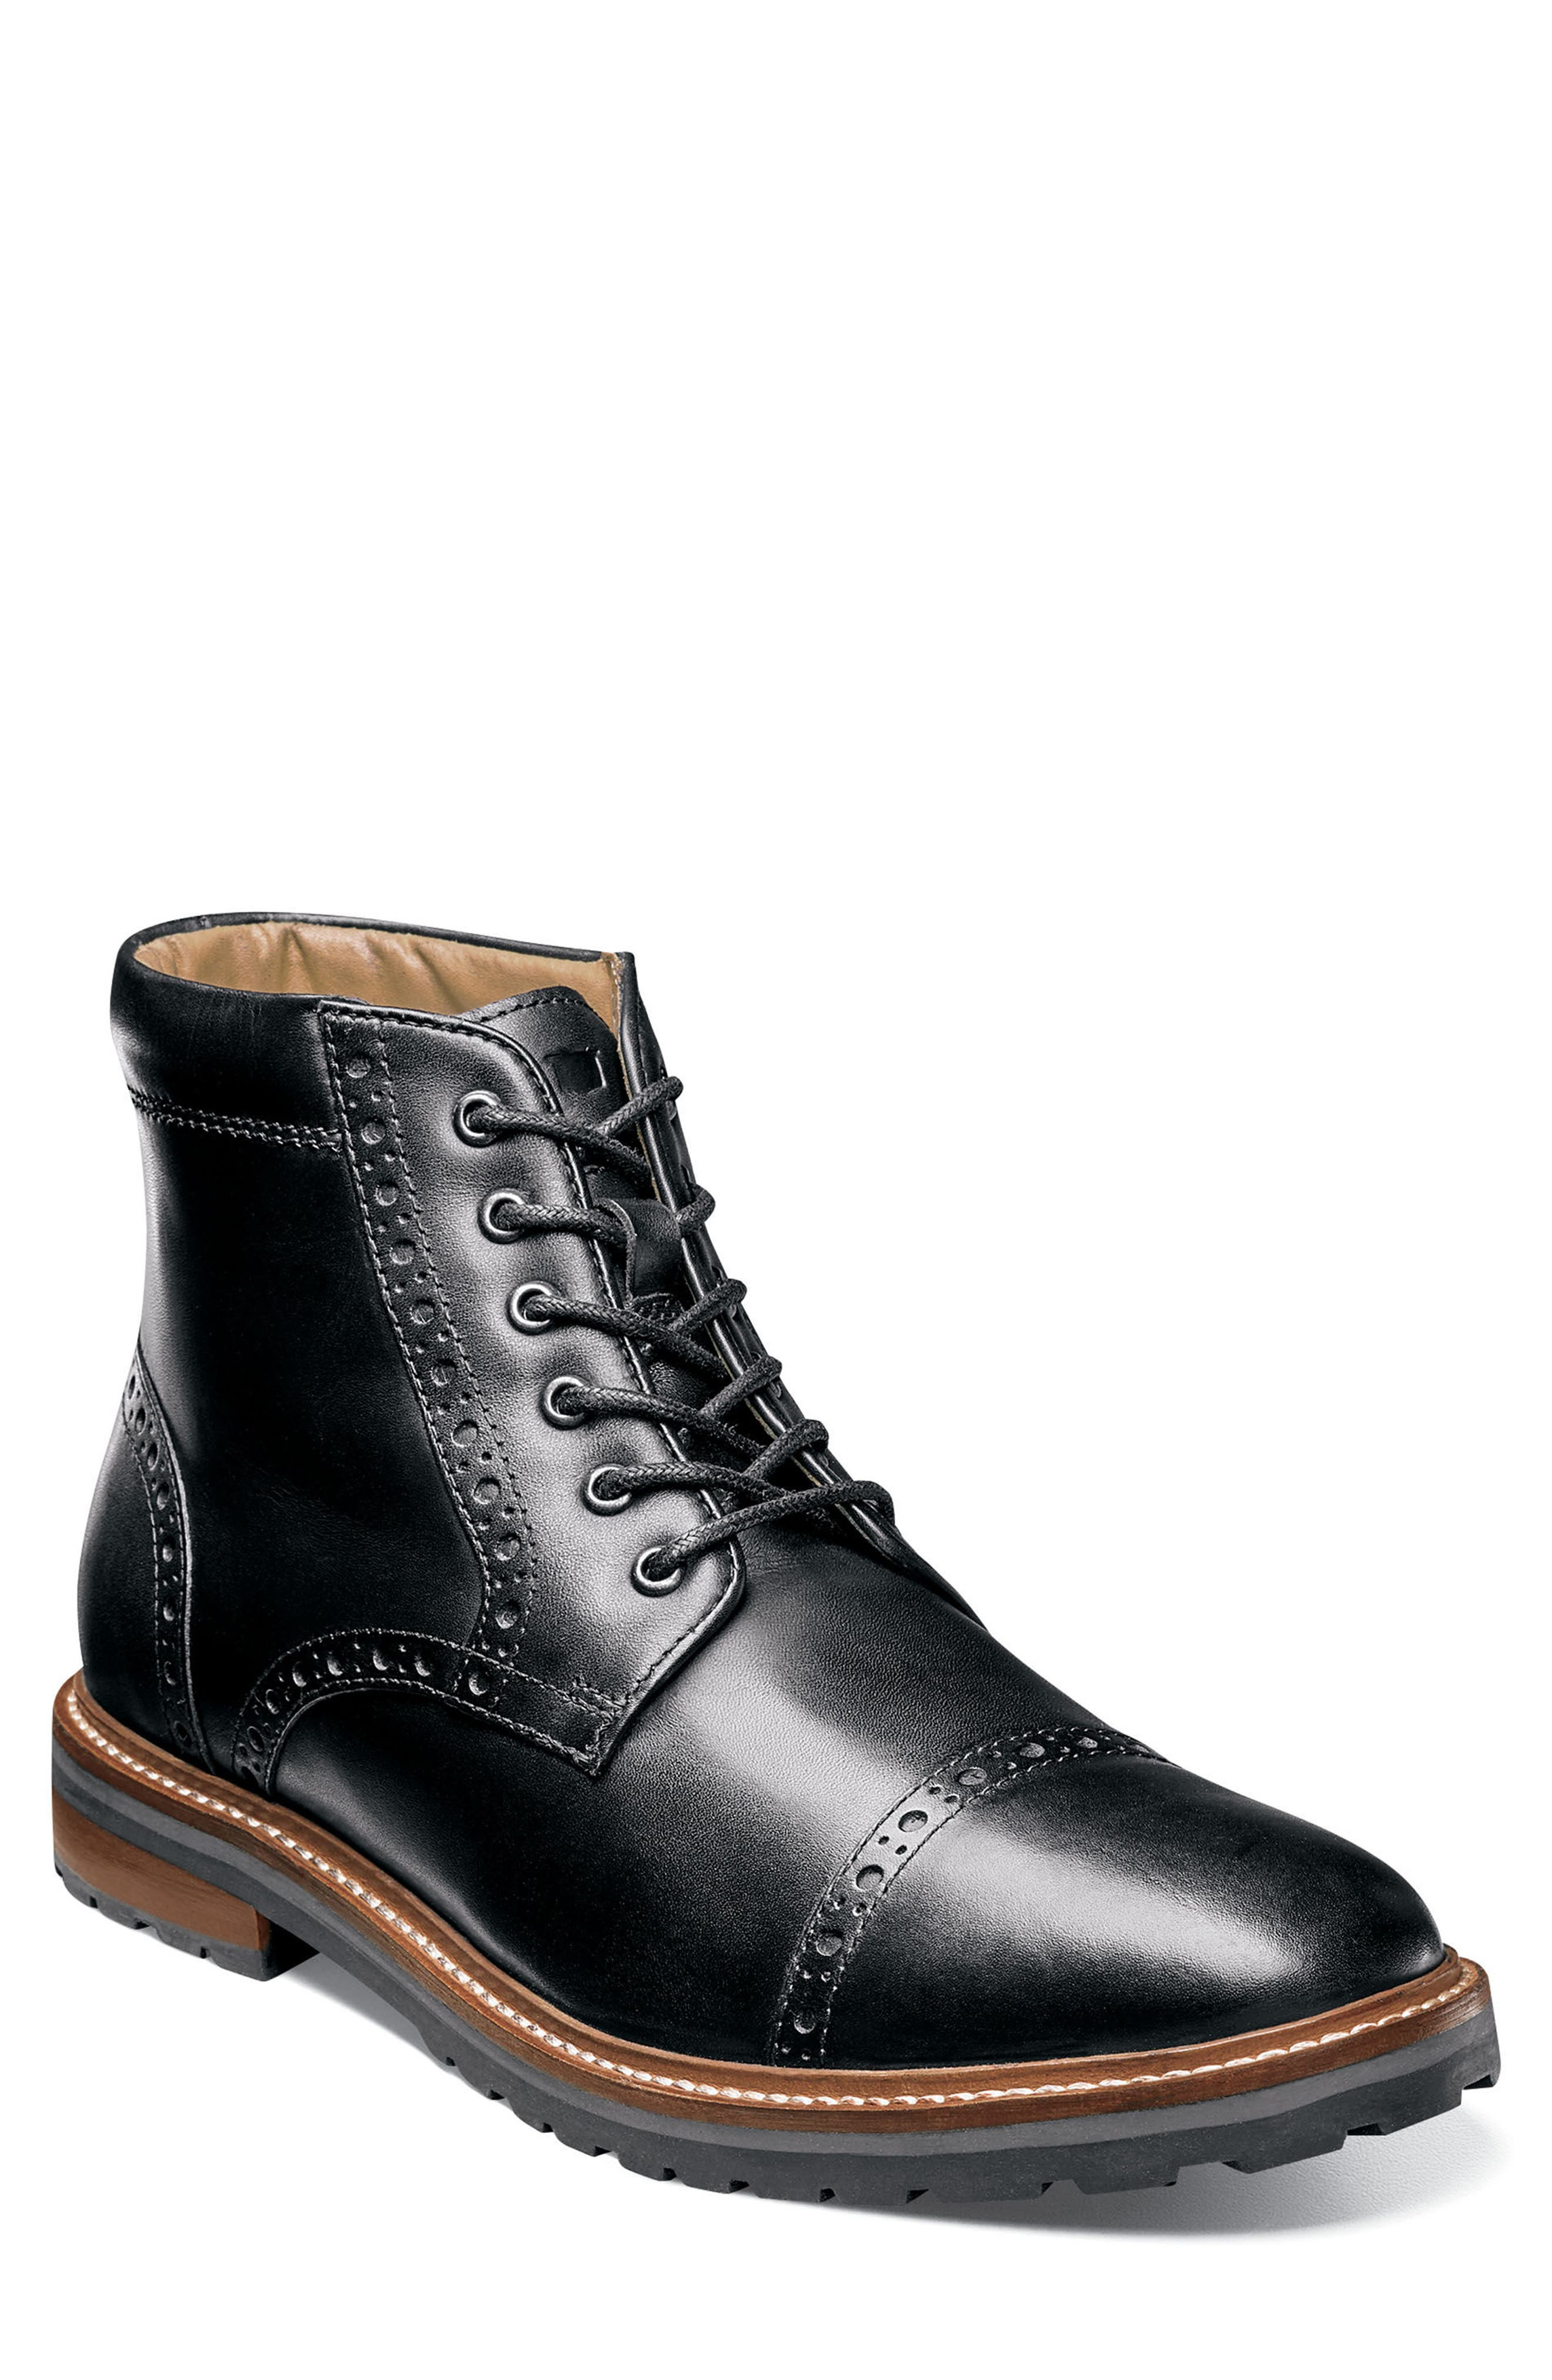 Main Image - Florsheim Estabrook Cap Toe Boot (Men)